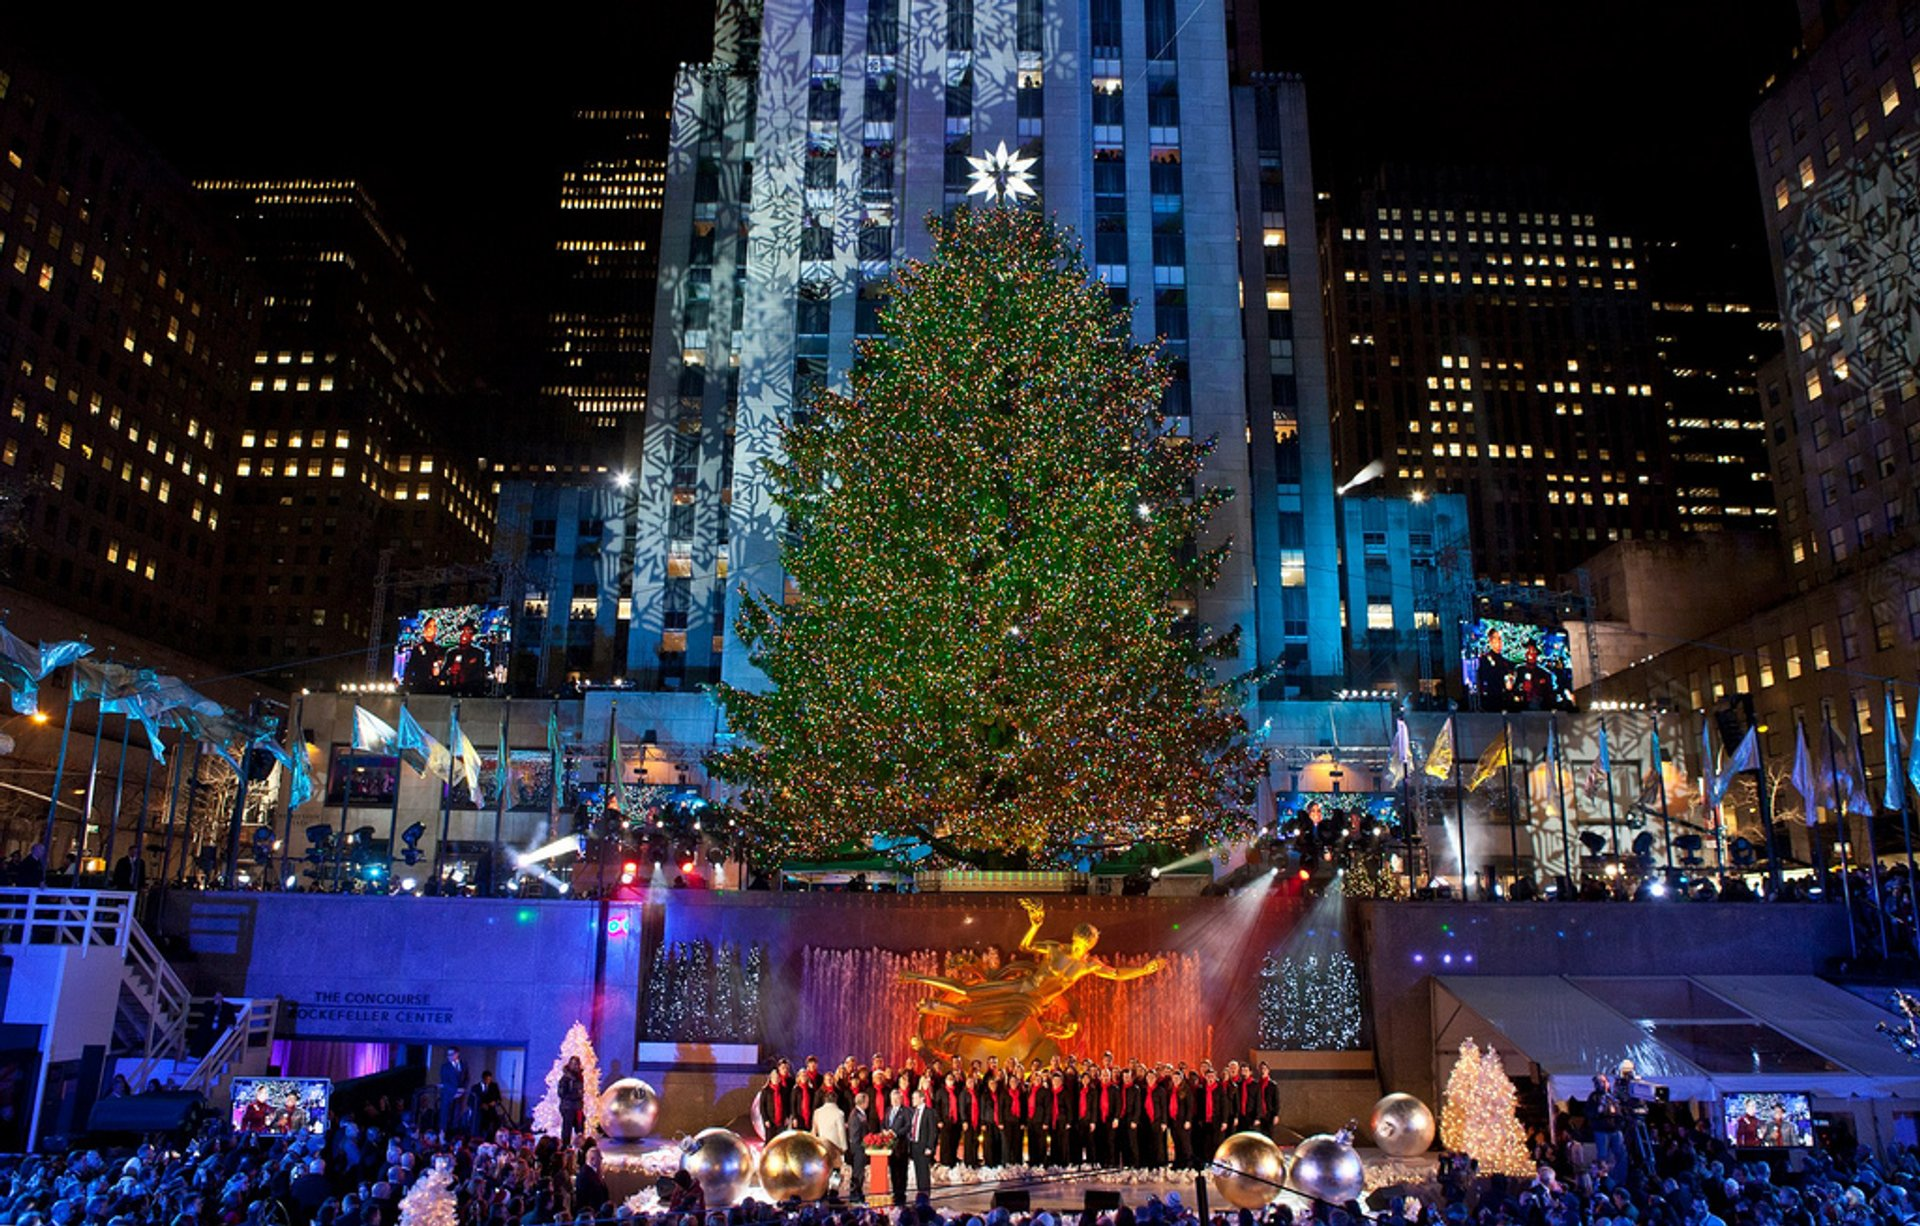 Rockefeller Center Christmas Tree in New York - Best Season 2019